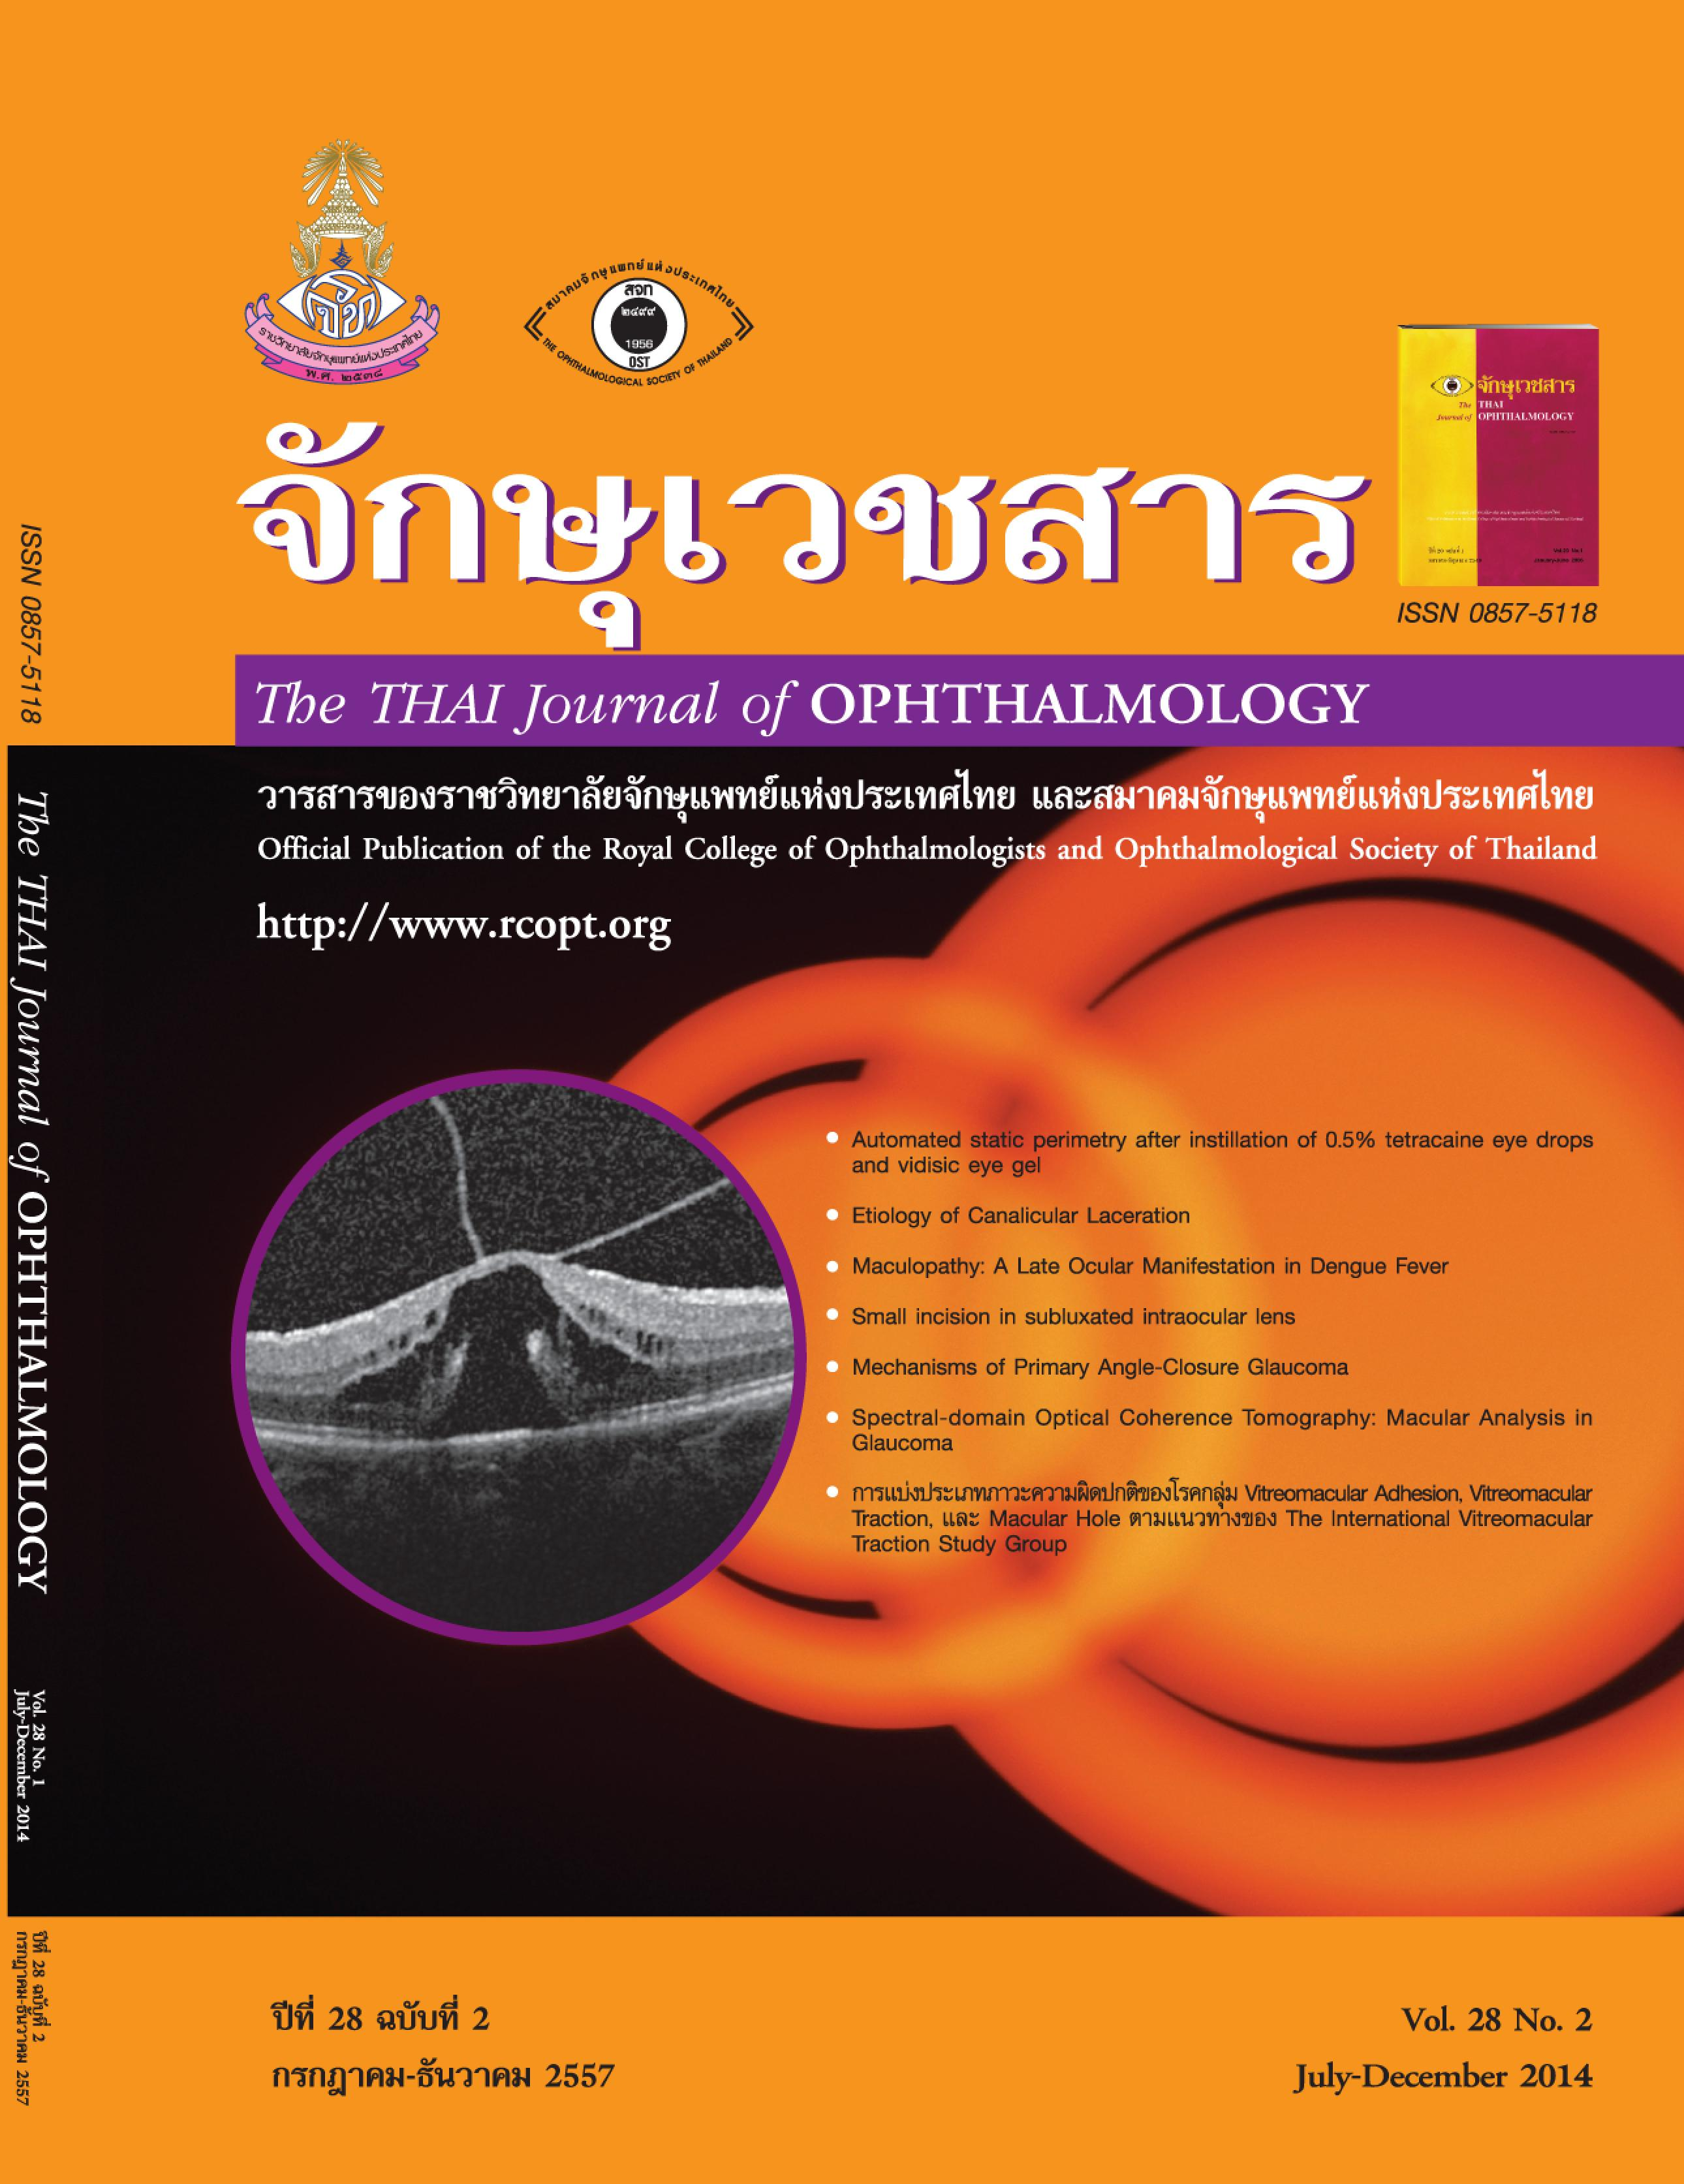 cover Ophthalmo J 28 2 2014.jpg